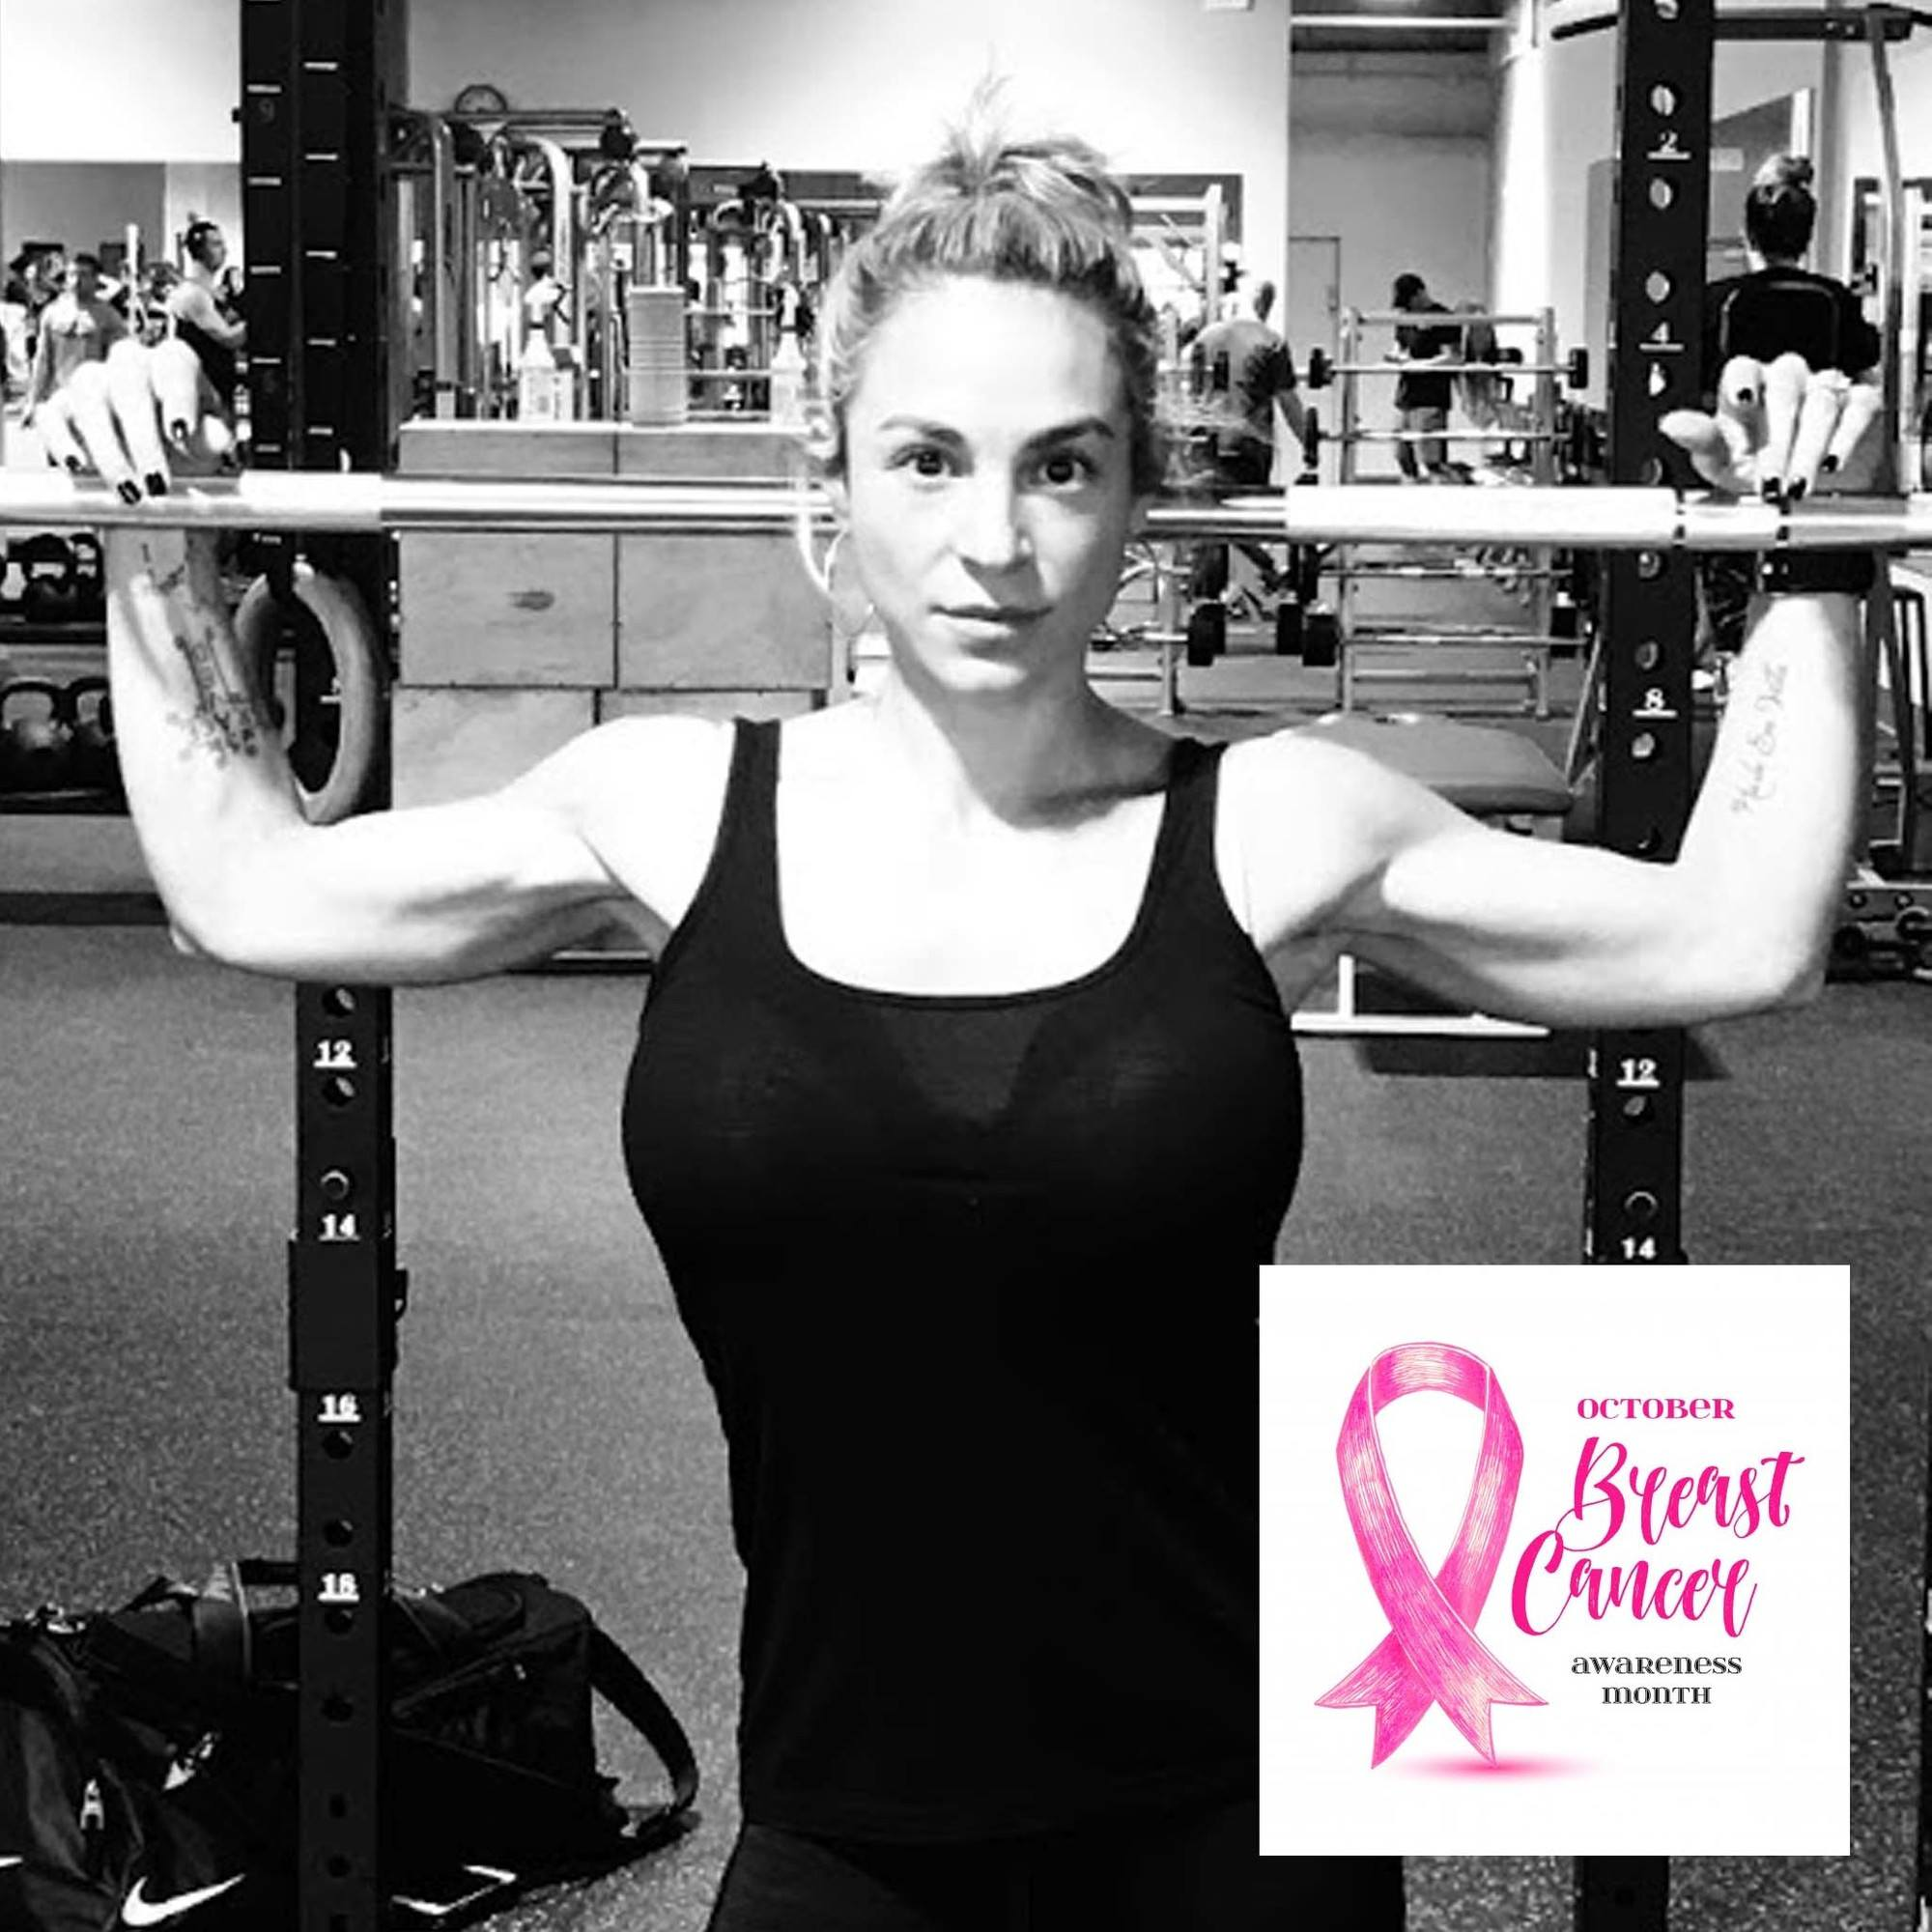 October – BREAST CANCER AWARENESS MONTH by Onica Sinclair